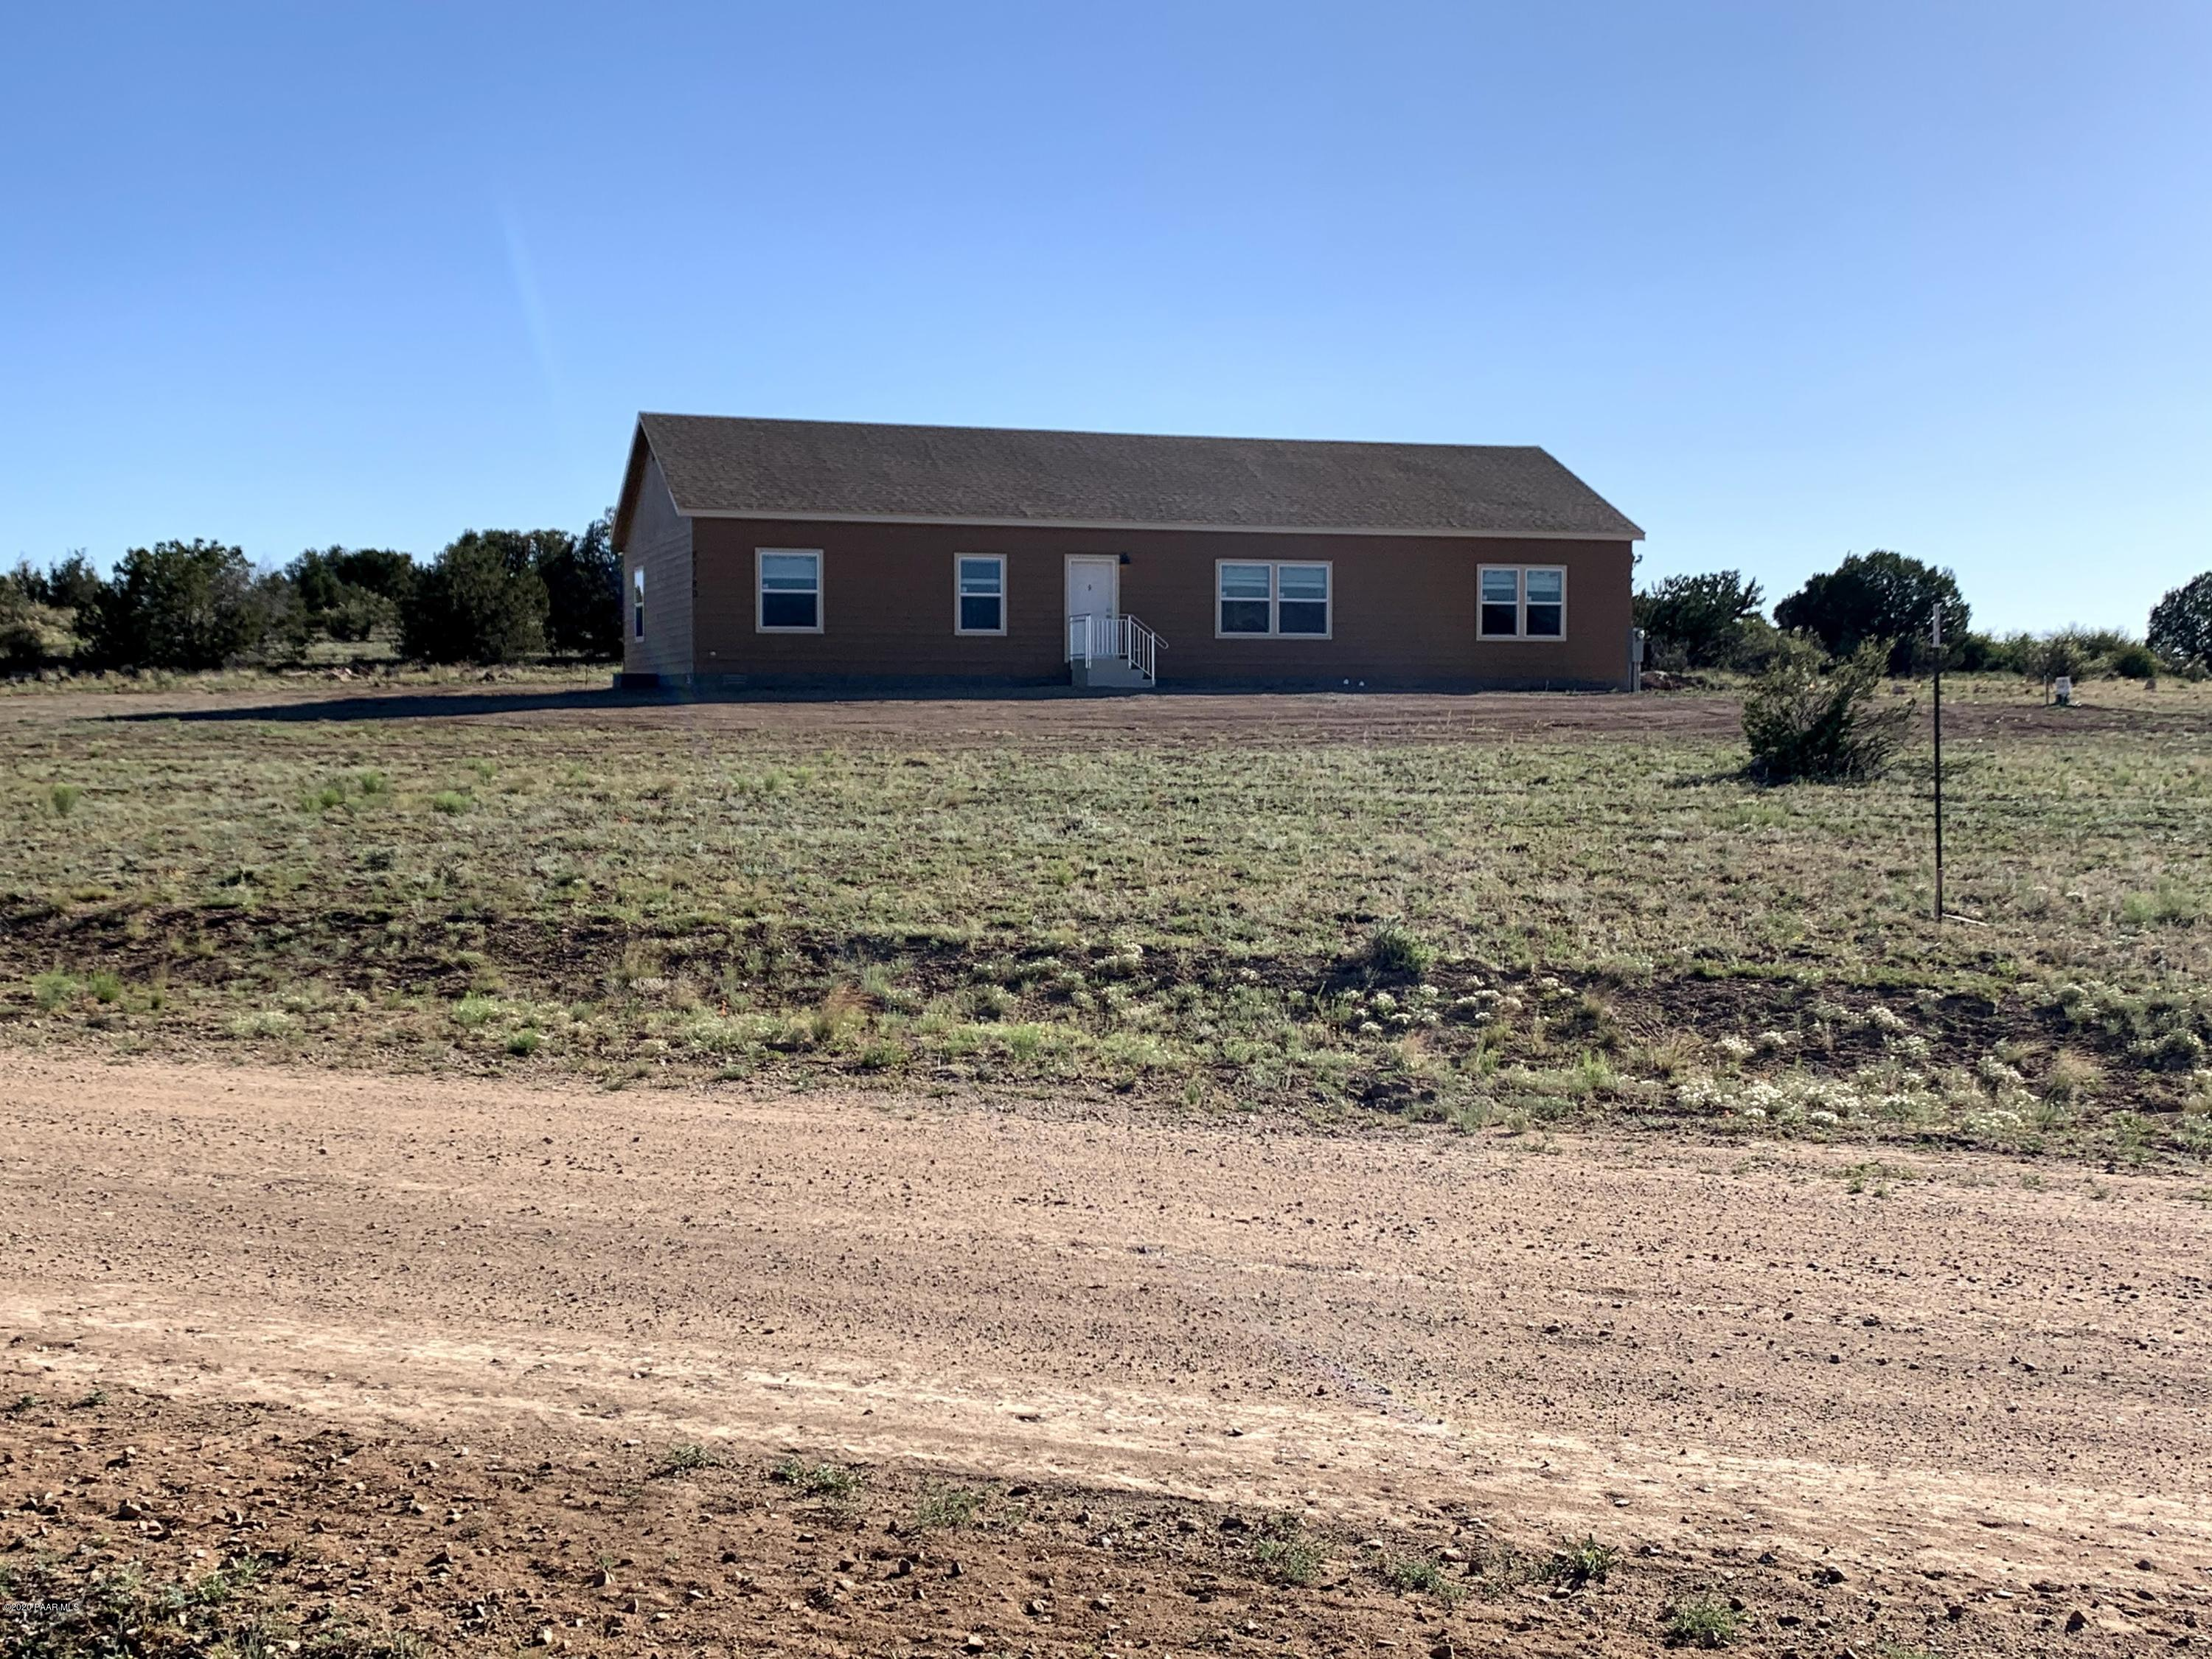 Photo of 23180 N Headwaters, Paulden, AZ 86334